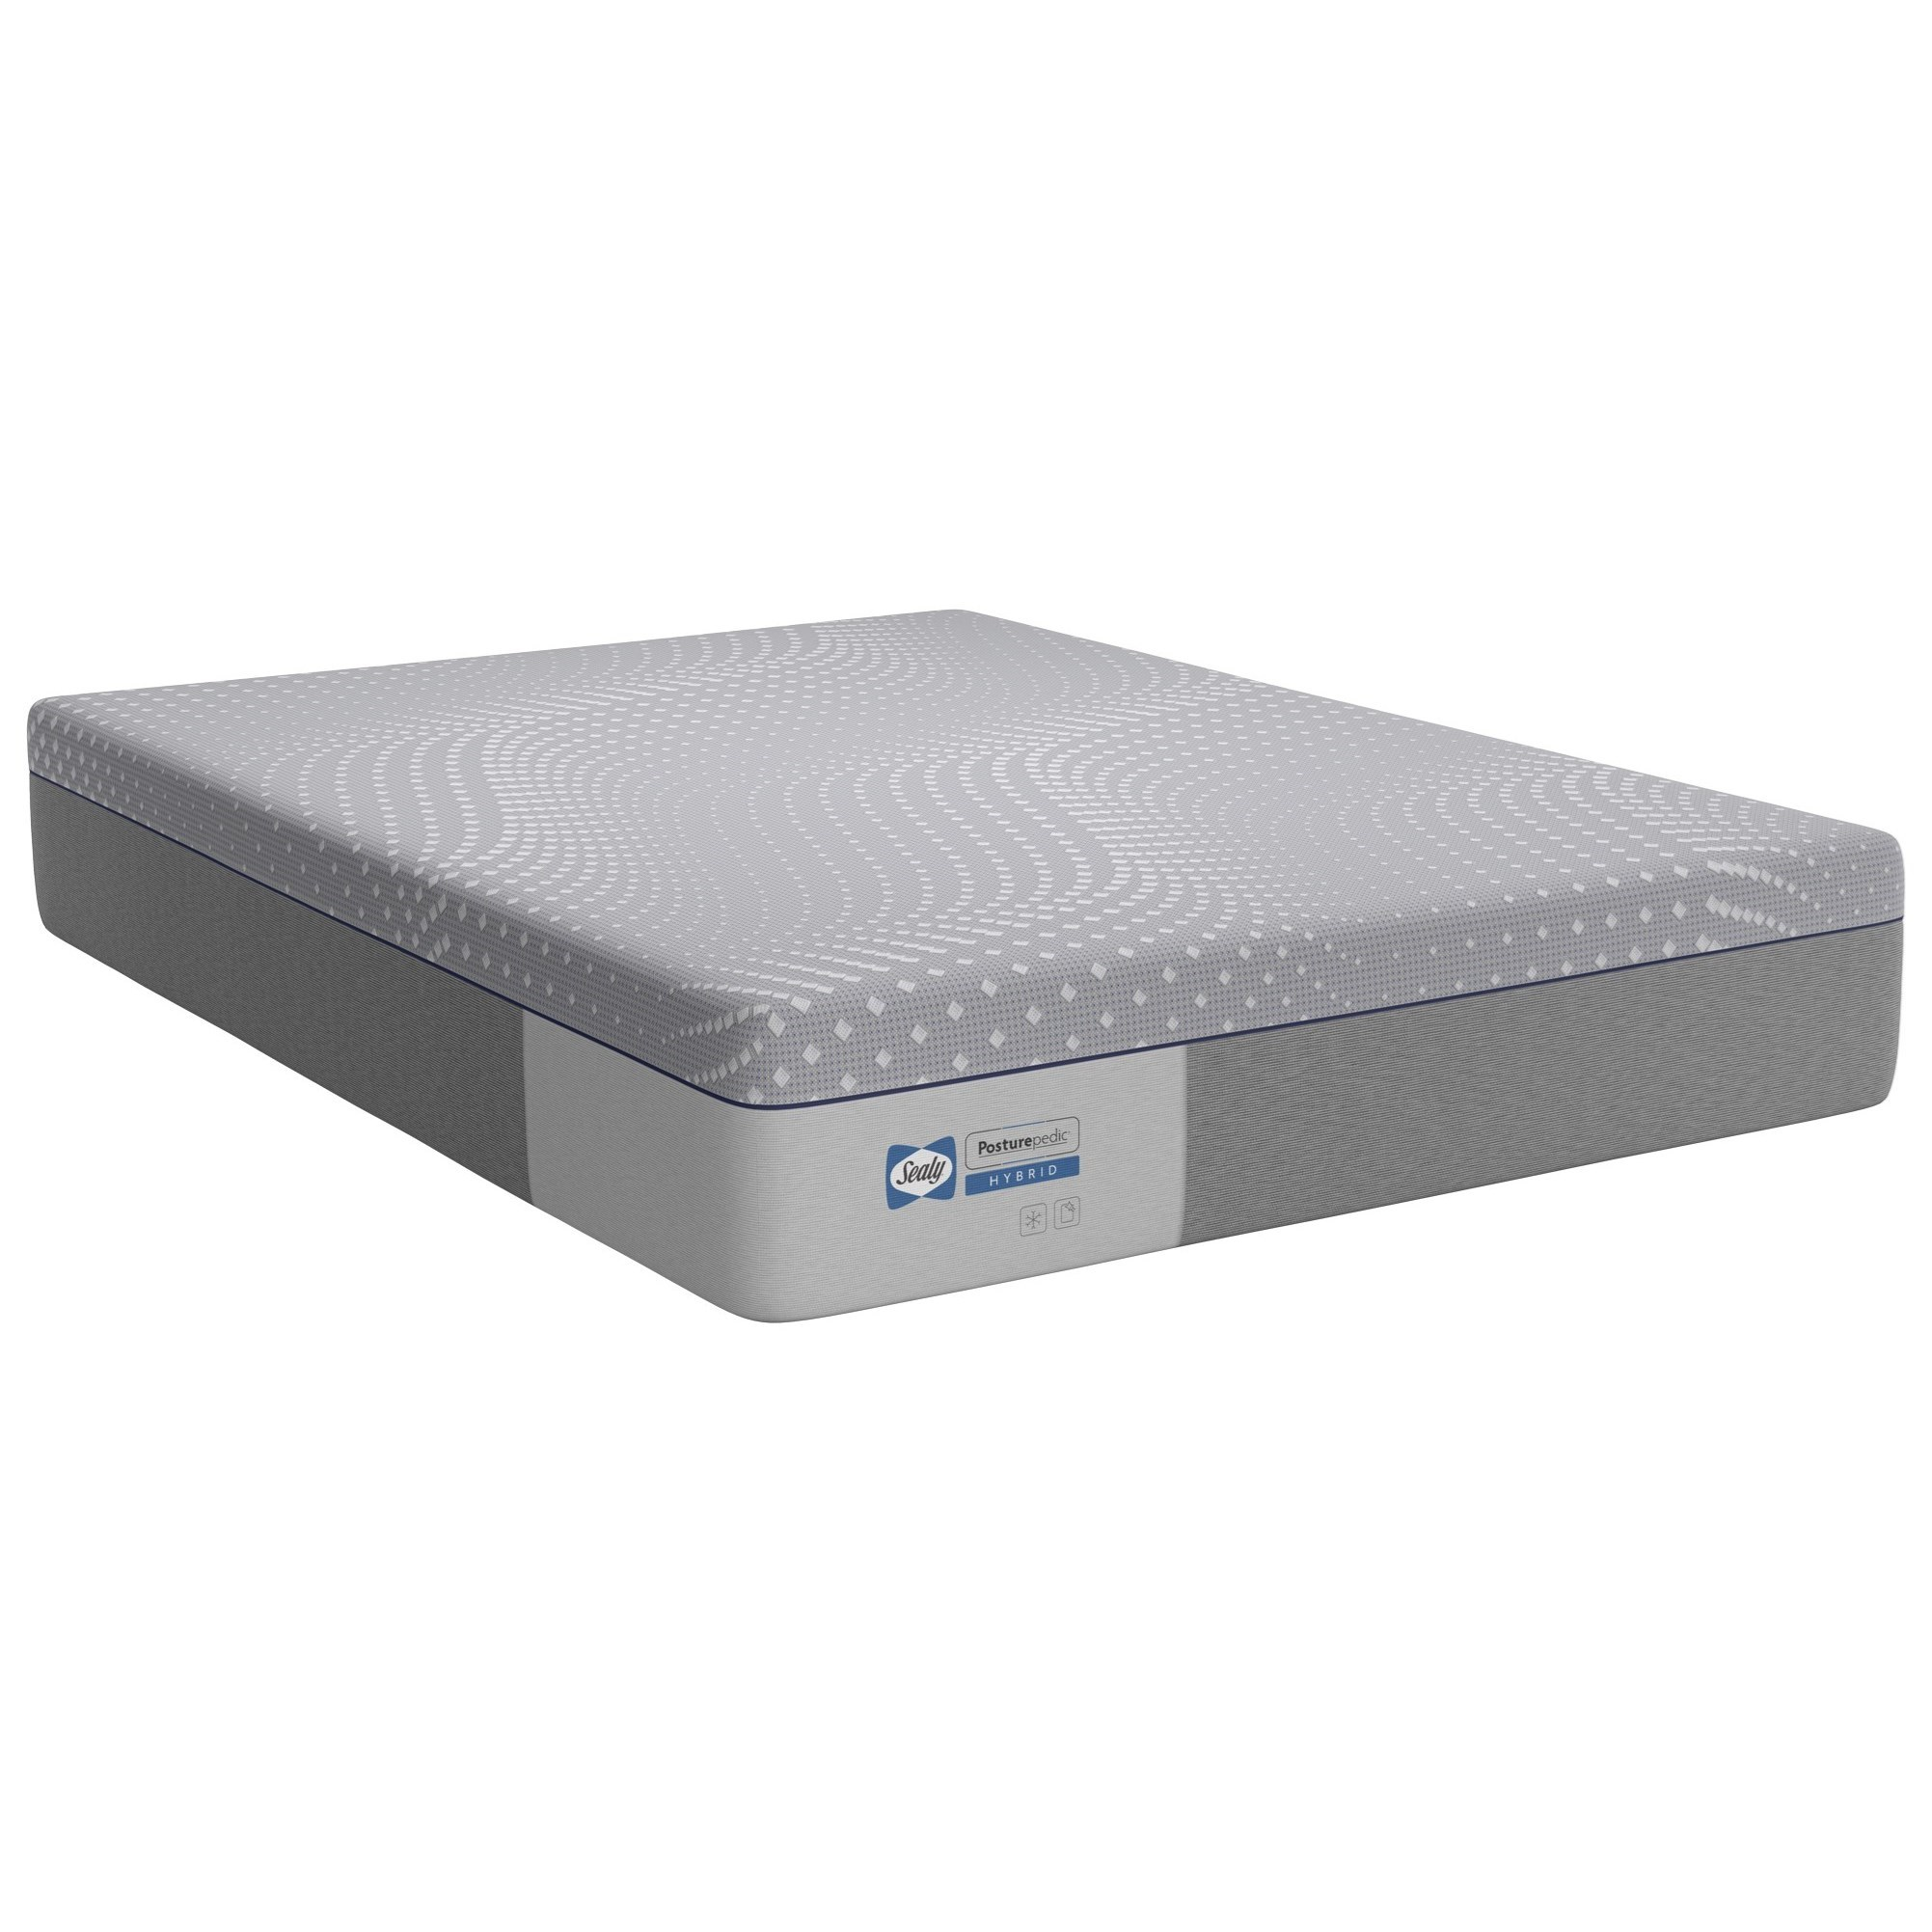 "PPH5 Posturpedic Hybrid Firm Cal King 13"" Firm Hybrid Mattress by Sealy at Malouf Furniture Co."